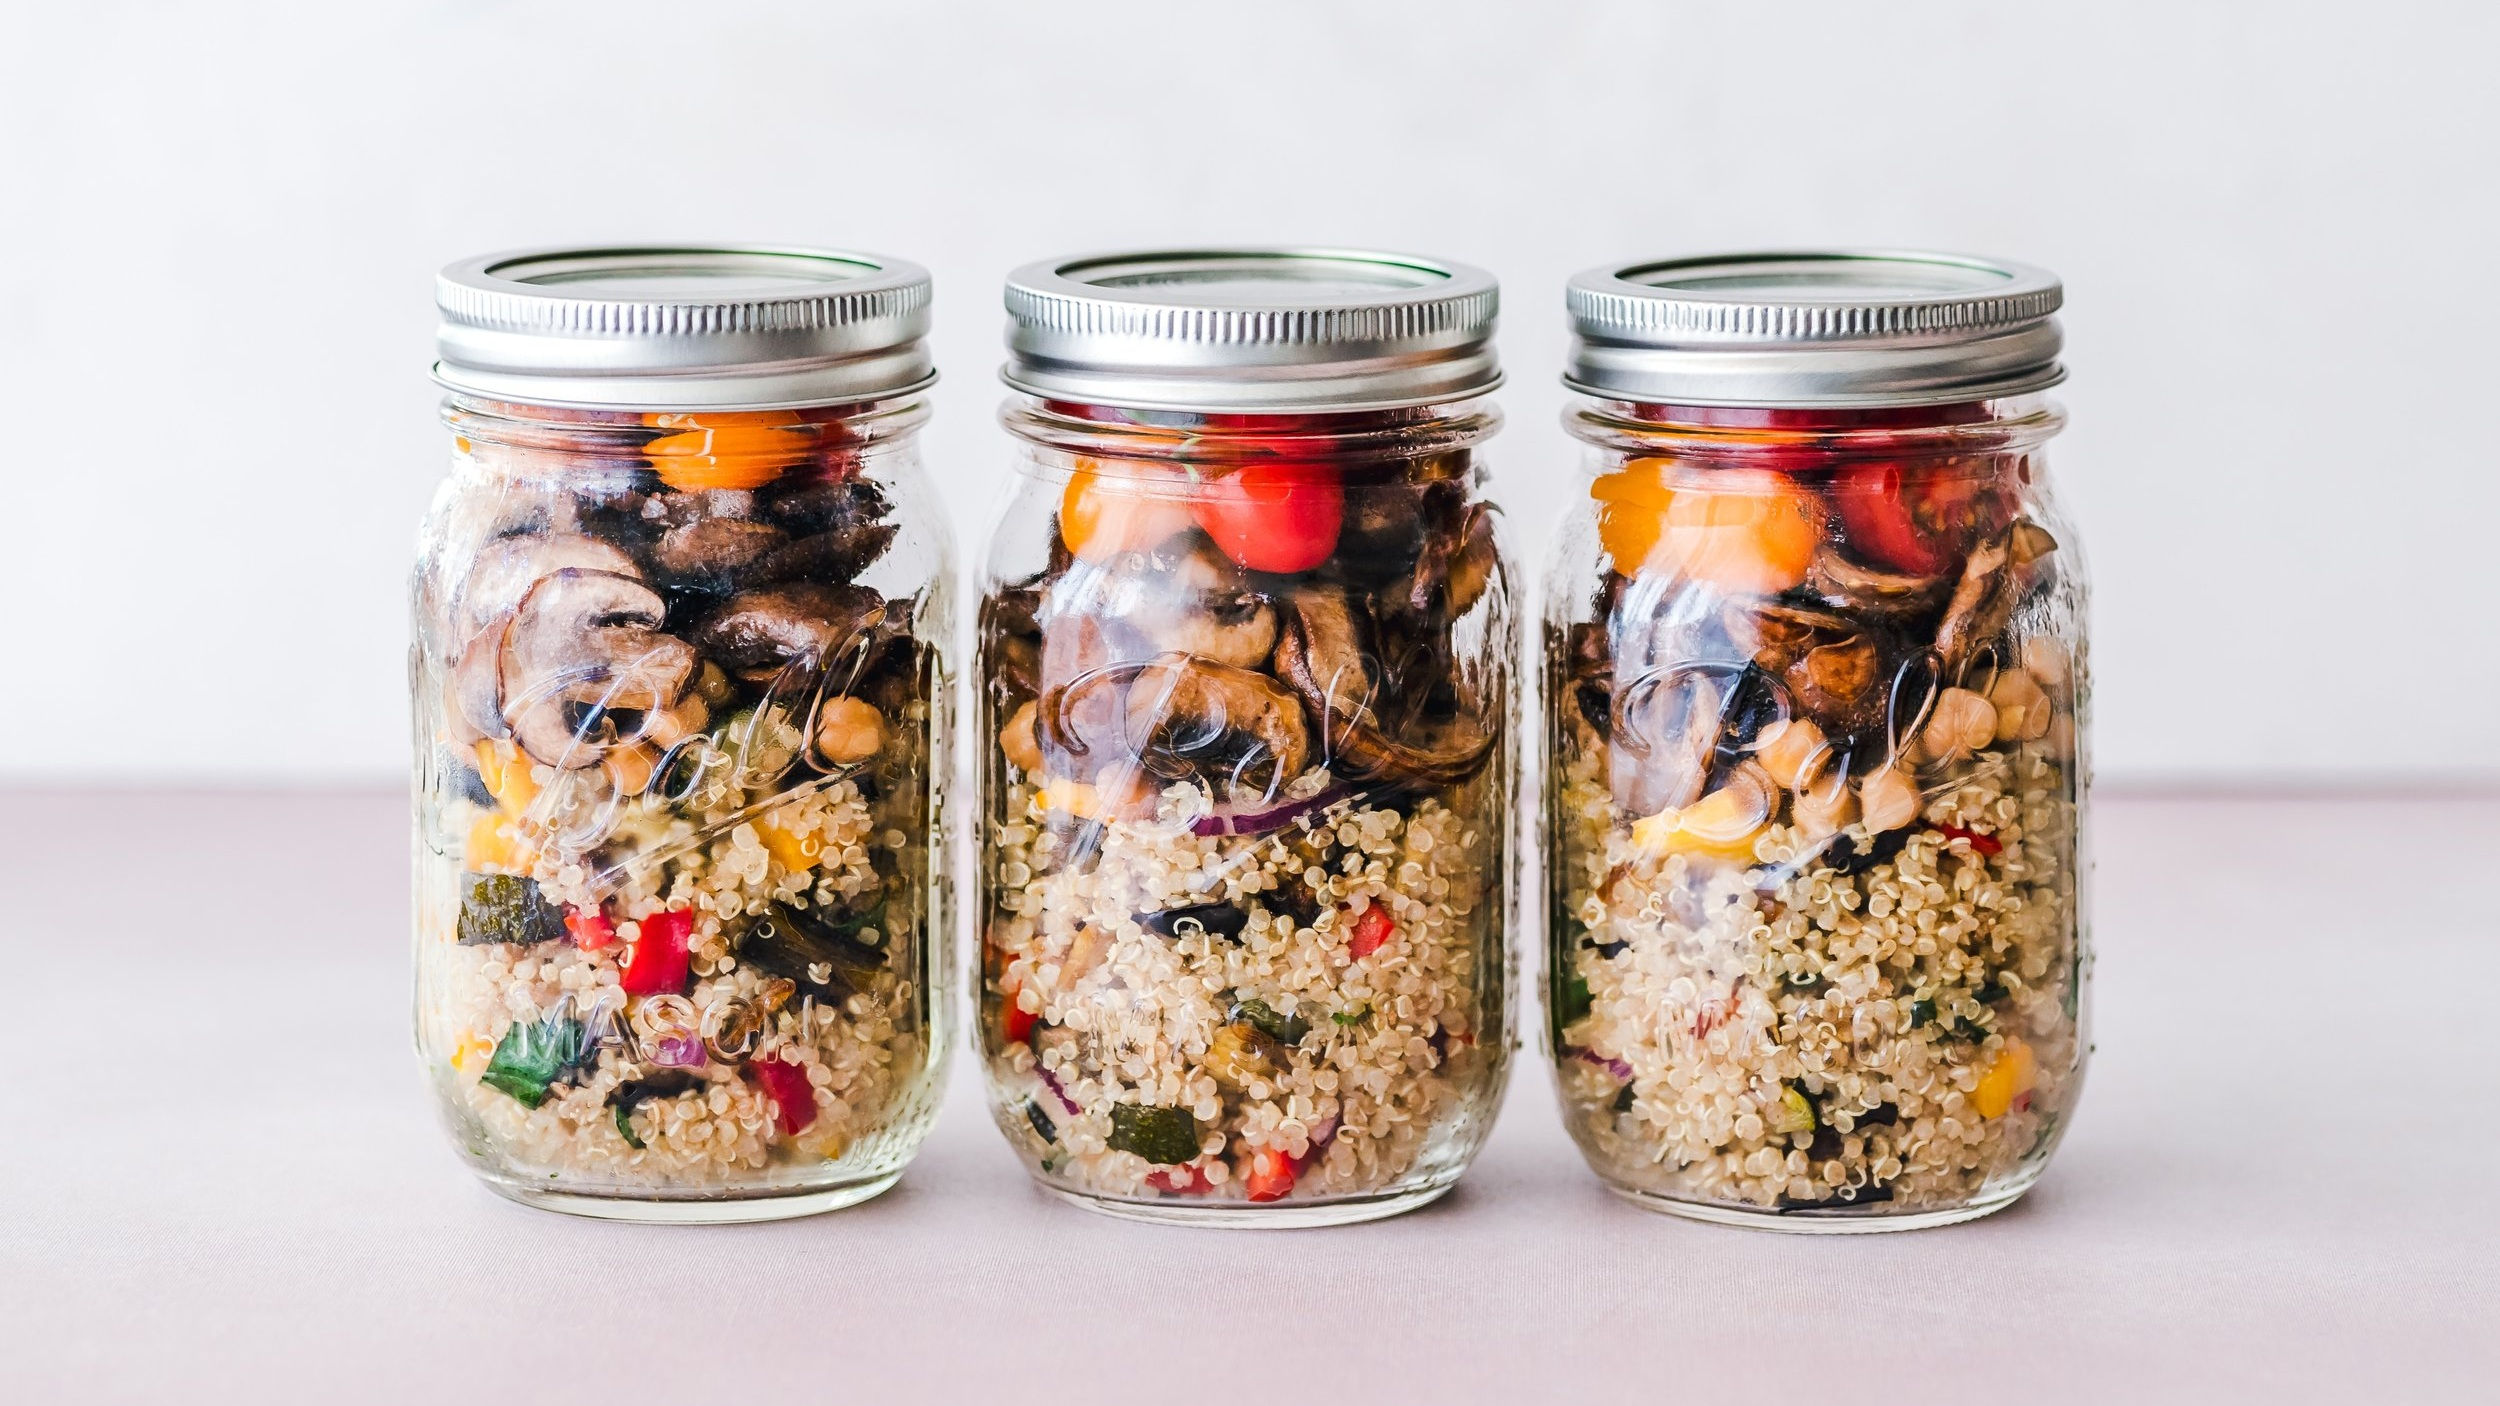 Quinoa is a versatile and portable grain. It holds up well for packed lunches and picnics. Make a batch and enjoy it throughout the week for breakfast, lunch, and dinner.